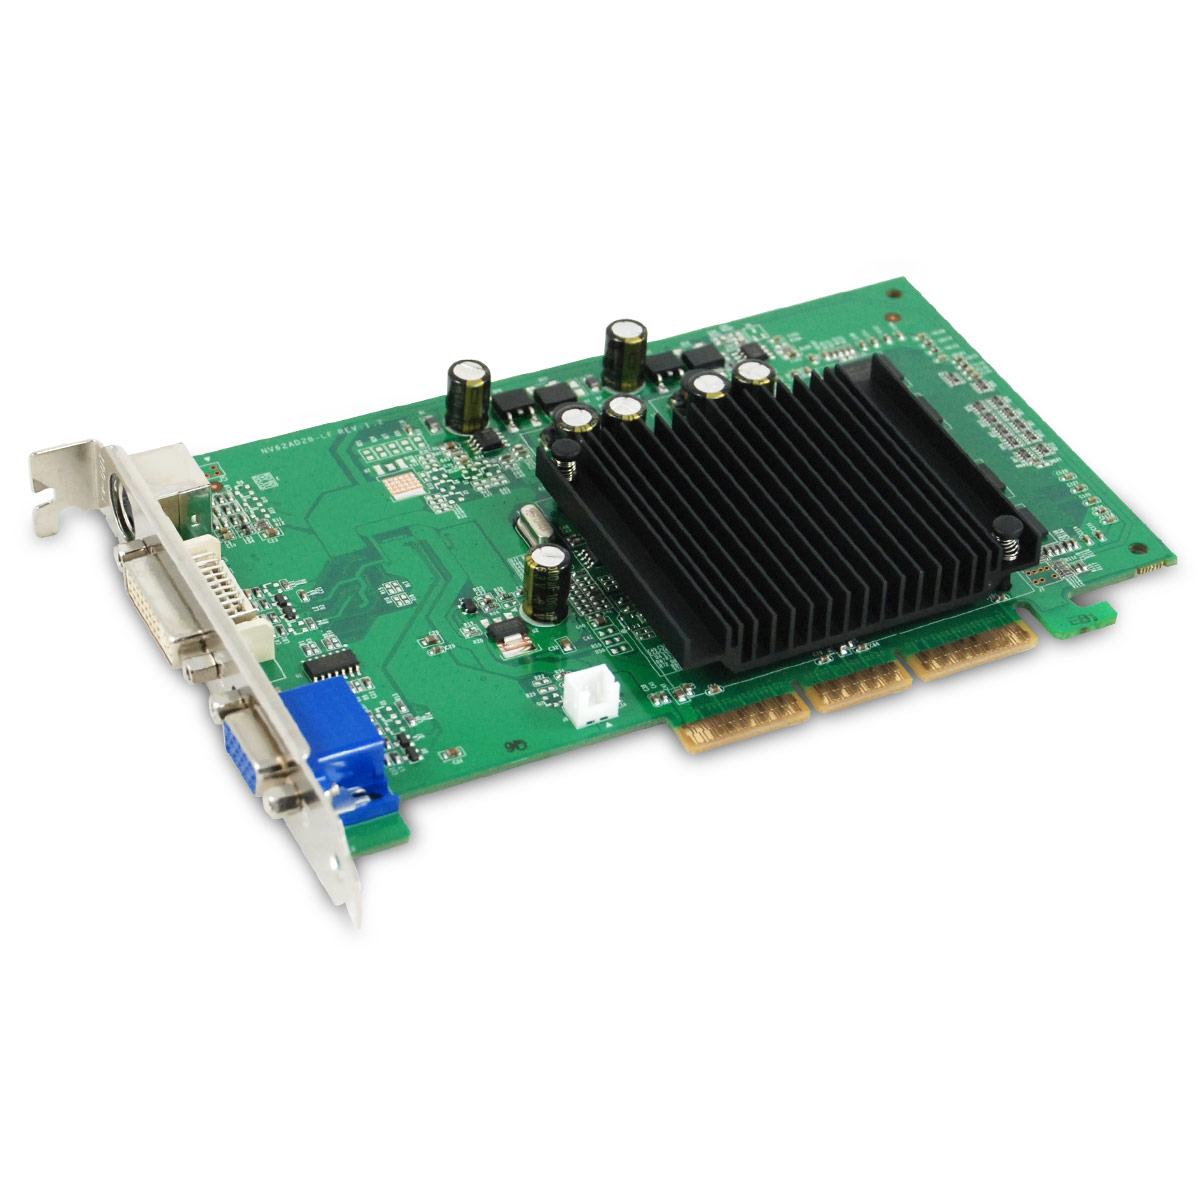 Placa de Video AGP GeForce FX6200 512MB DDR2 64Bits DVI-VGA 512-A8-N403-LR - EVGA